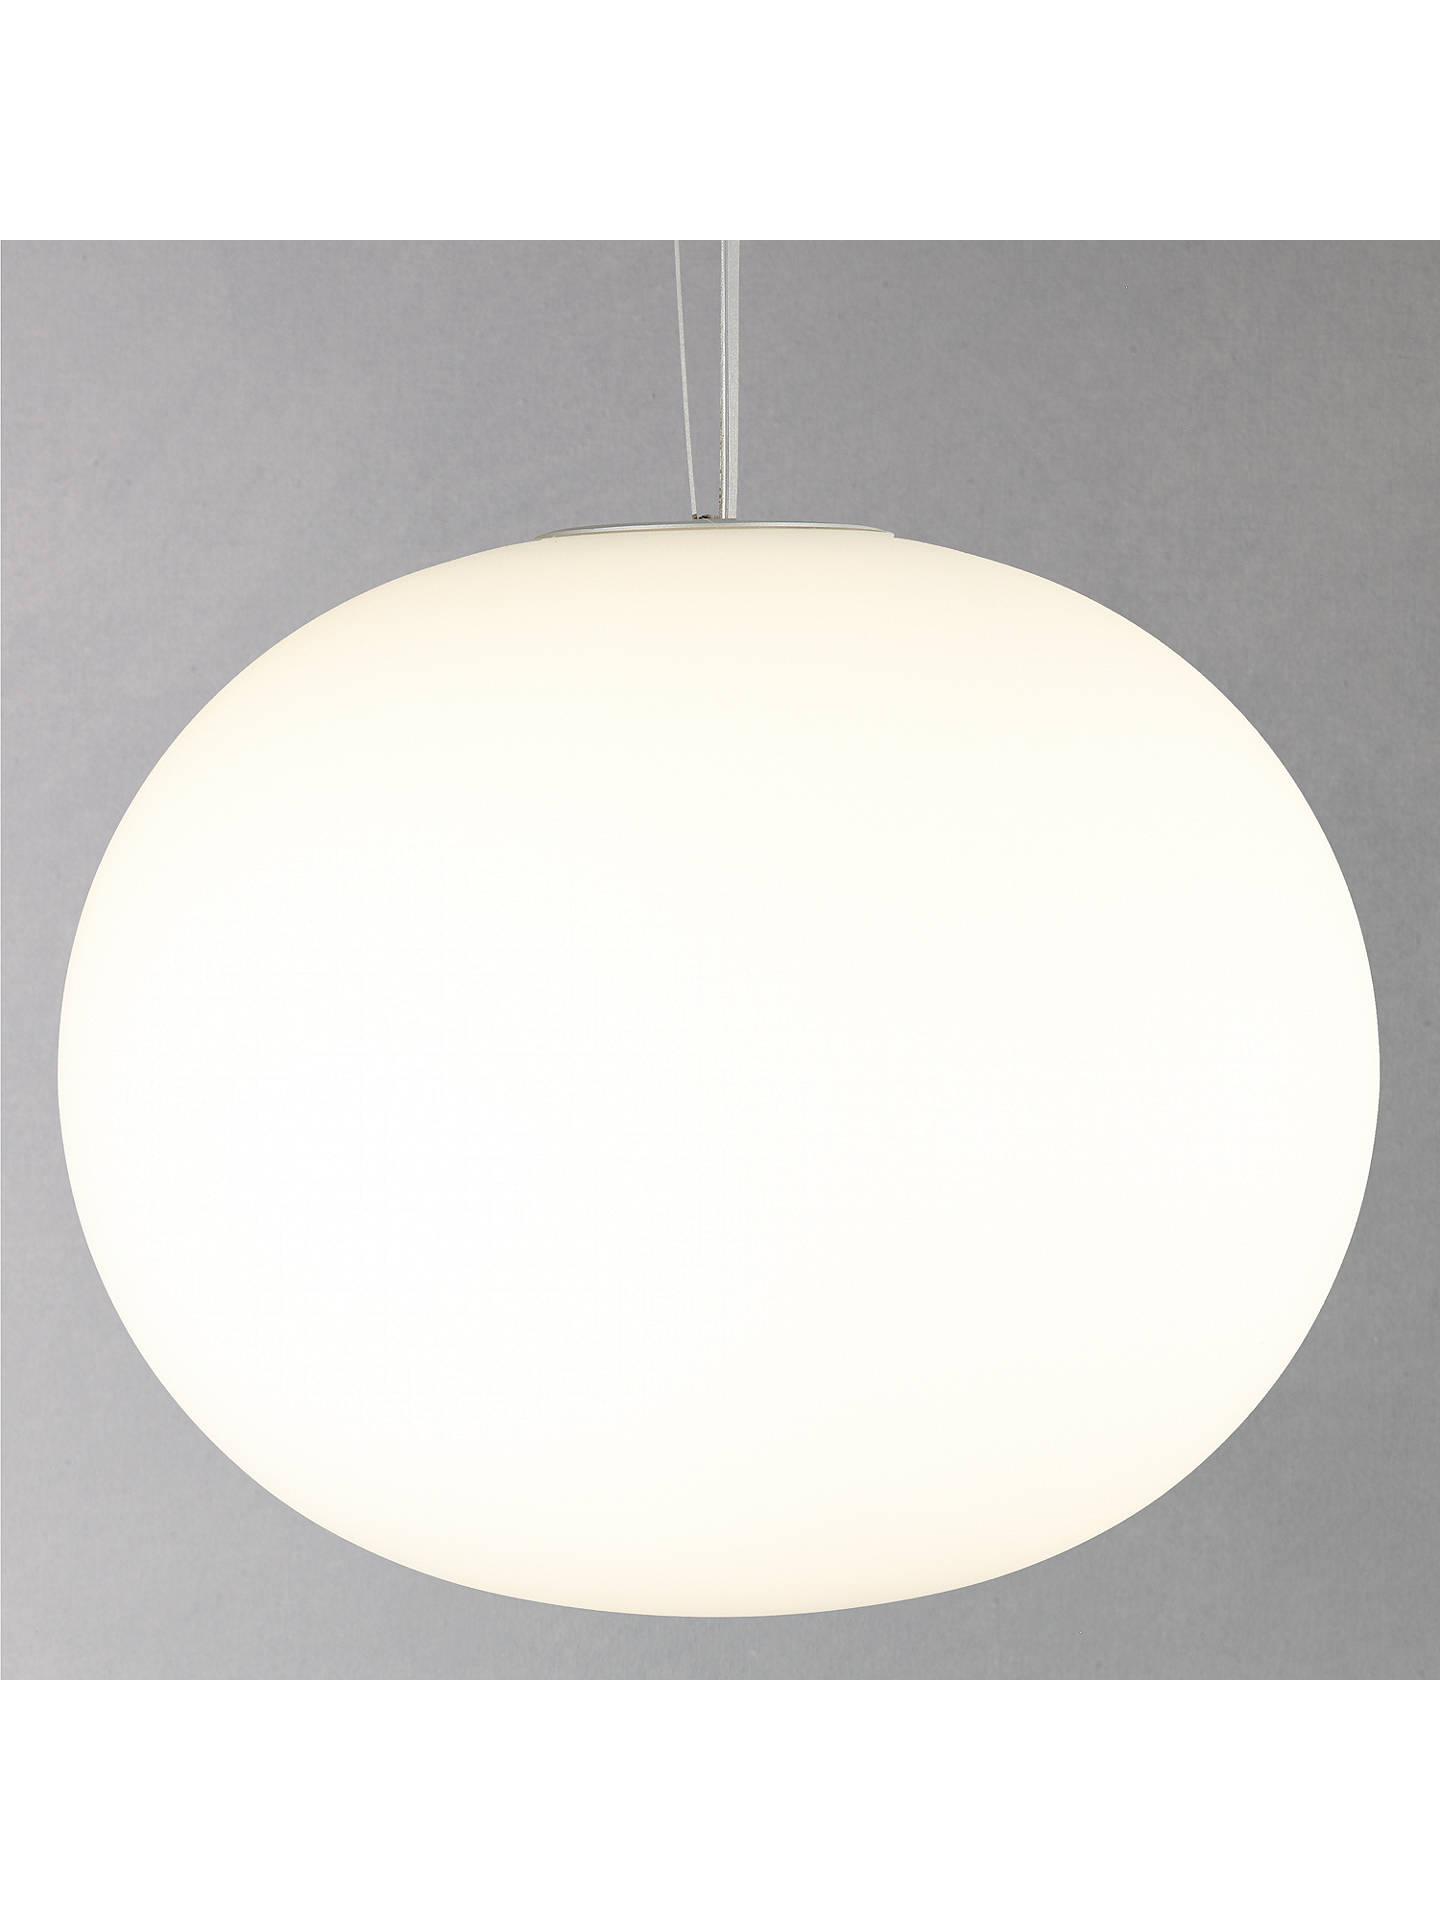 BuyFlos Glo-Ball S1 Ceiling Light Online at johnlewis.com